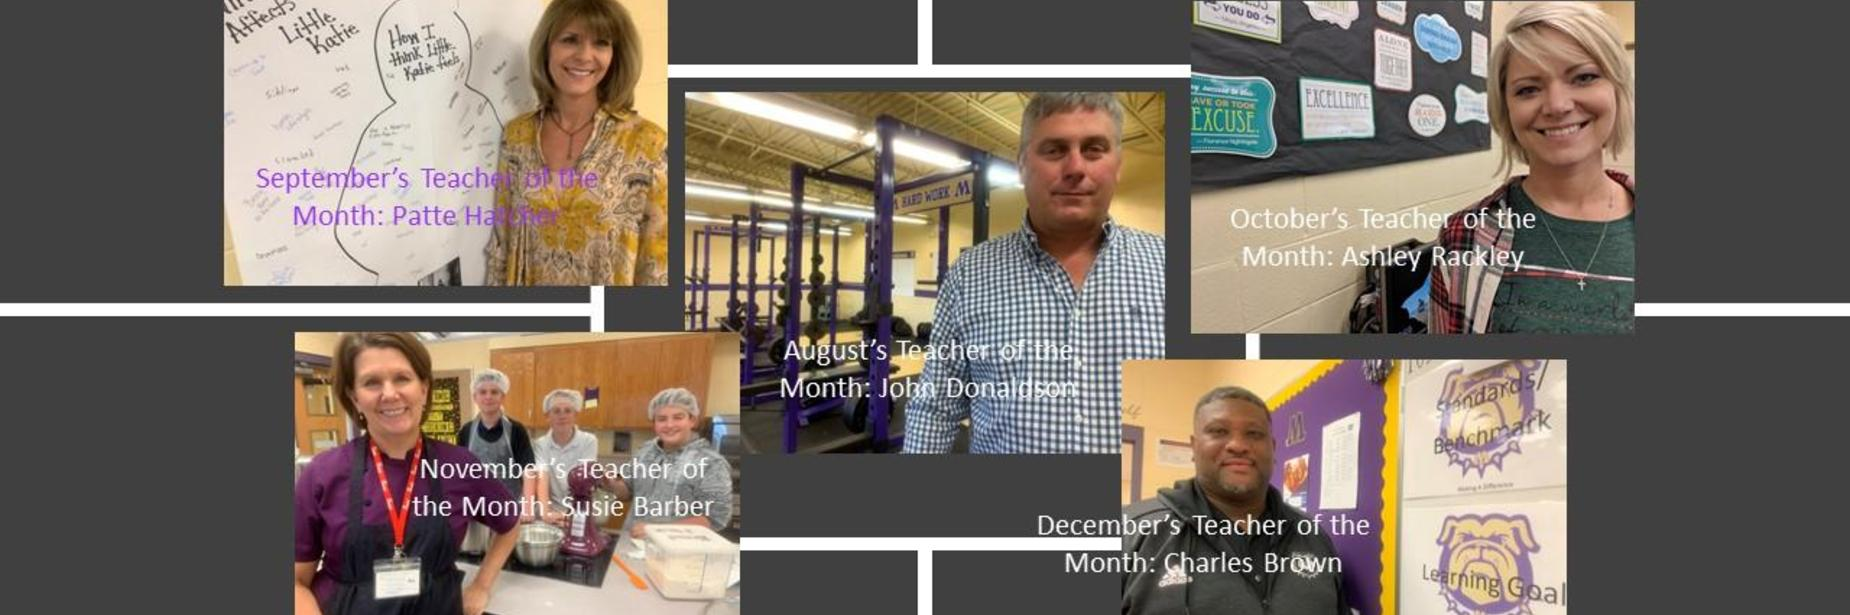 This picture shows first semester's teachers of the month: August is John Donaldson, September is Patte Hatcher, October's is Ashley Rackley, November's is Susie Barber, and December's is Chuckie Brown